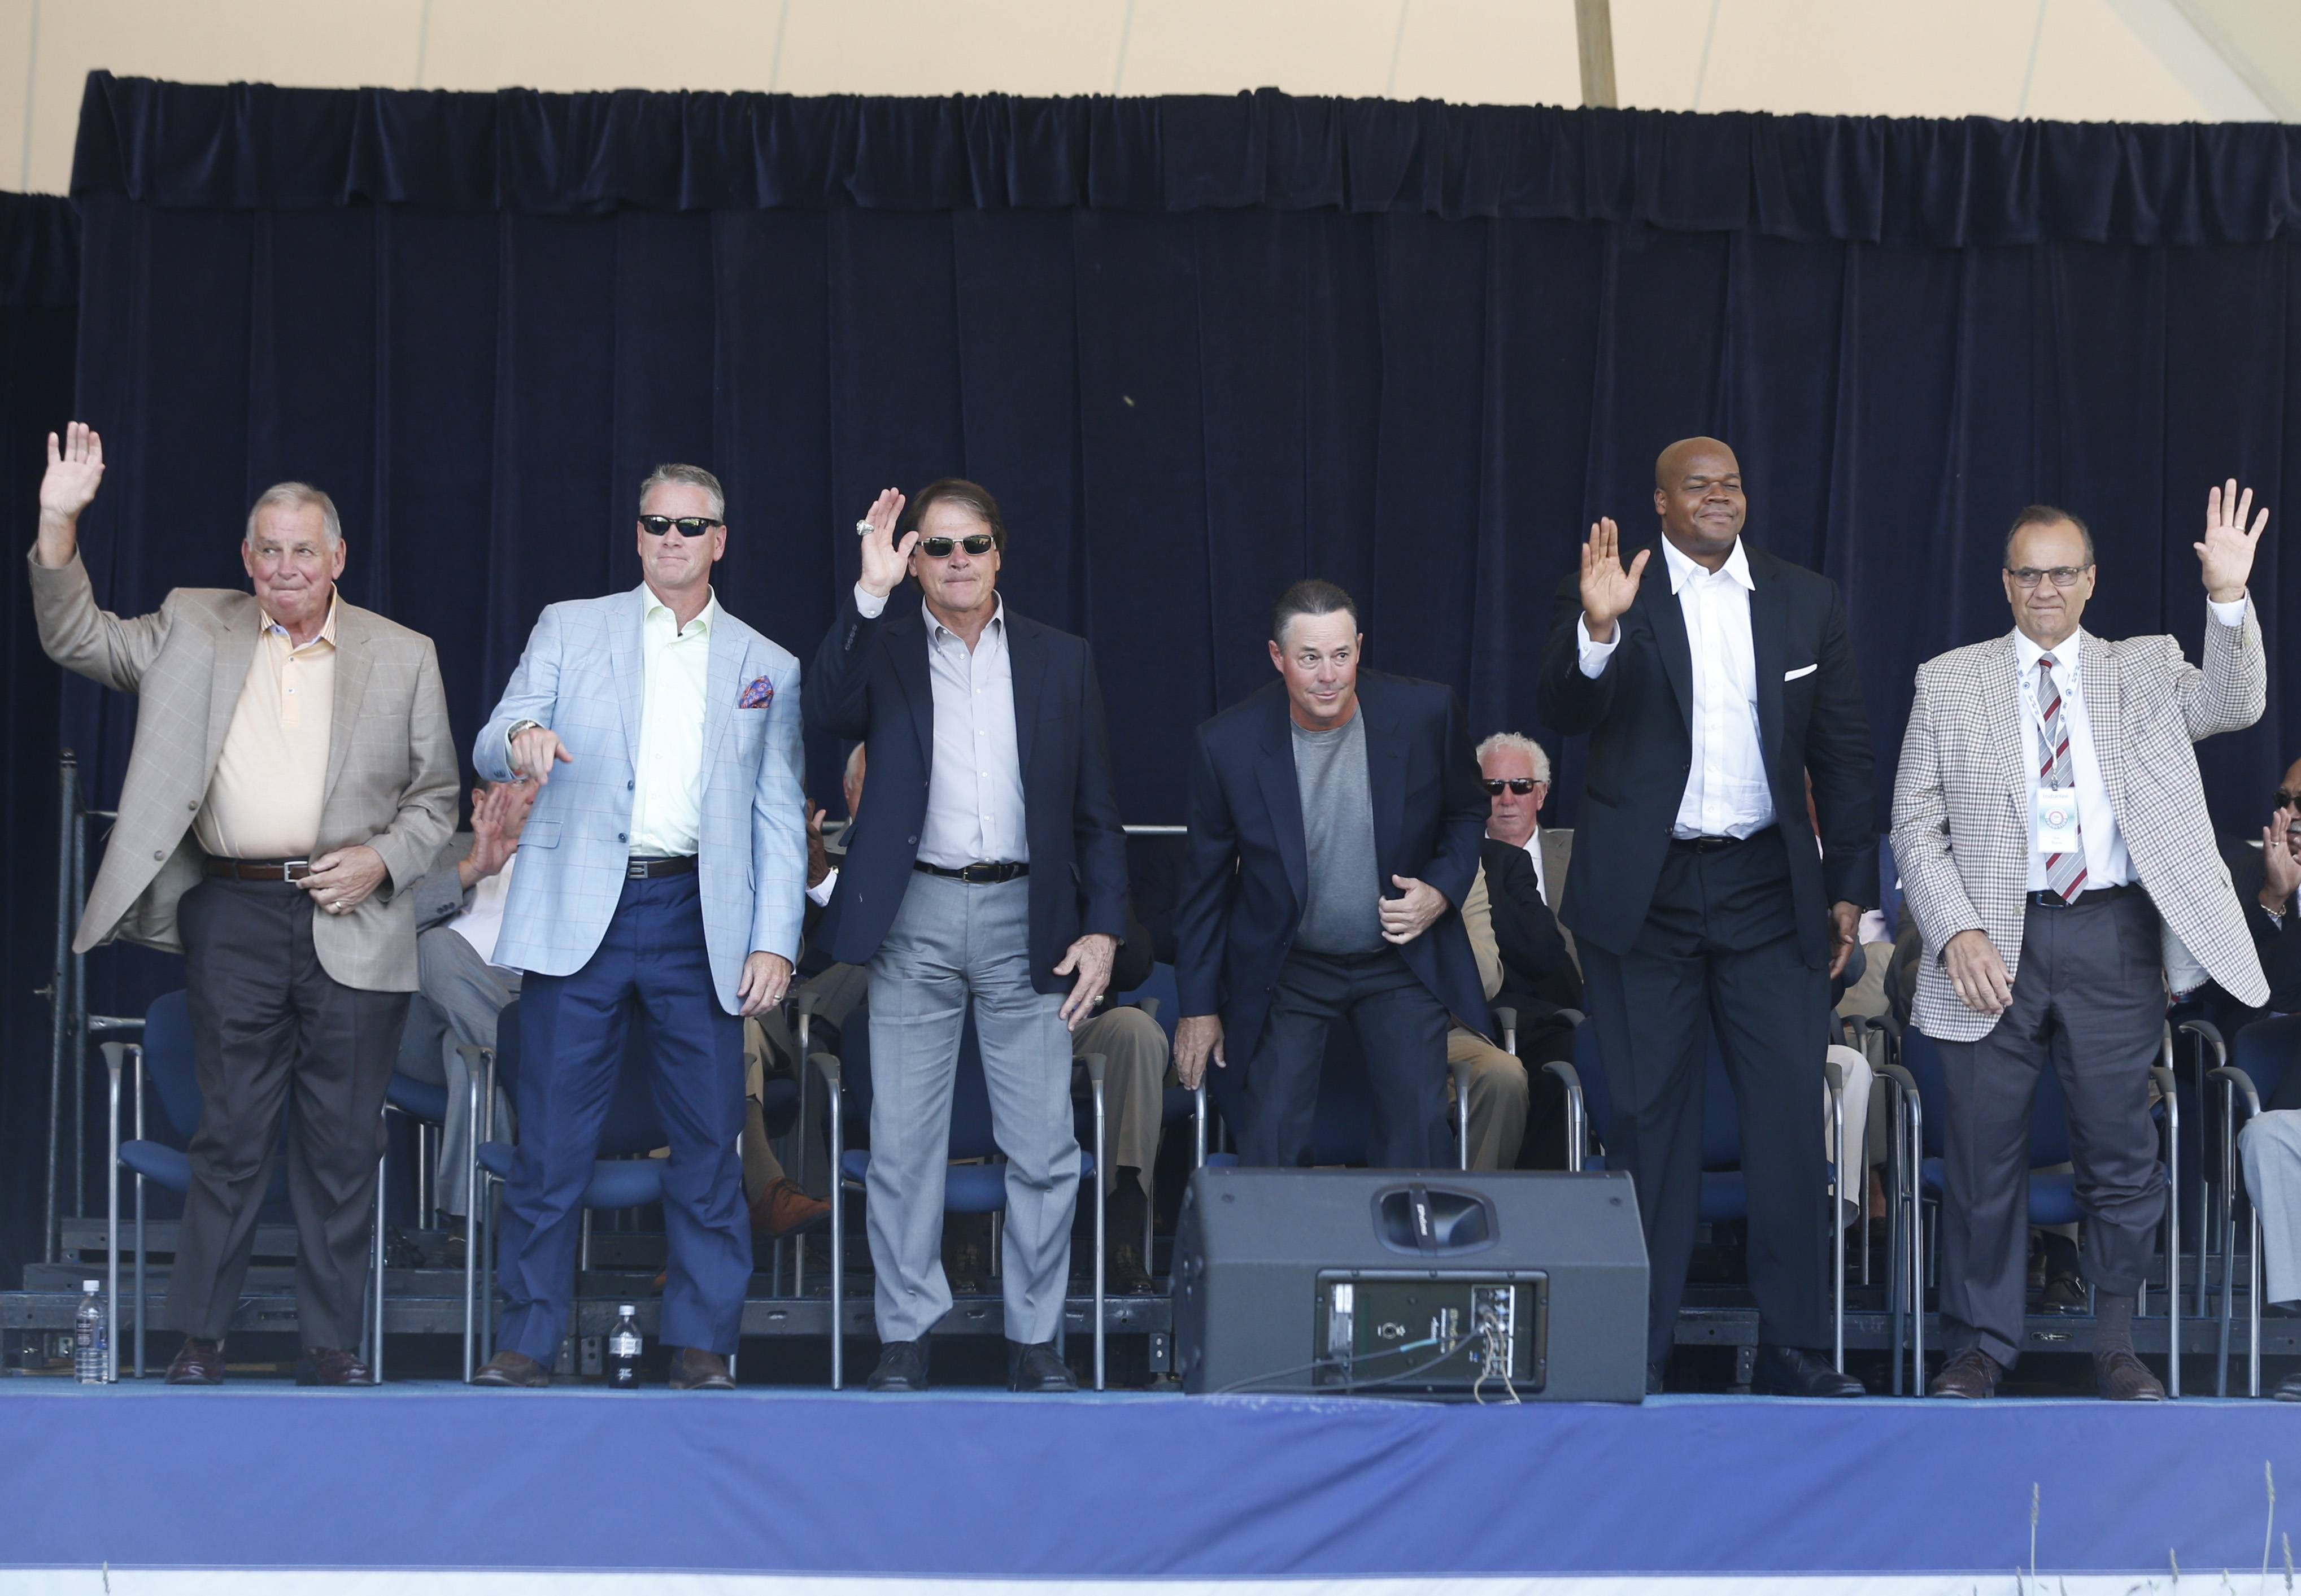 Baseball Hall of Fame electees Bobby Cox, Tom Glavine, Tony La Russa, Greg Maddux, Frank Thomas and Joe Torre are introduced during an awards ceremony at Doubleday Field on Saturday, July 26, 2014, in Cooperstown, N.Y. They will be inducted on Sunday.